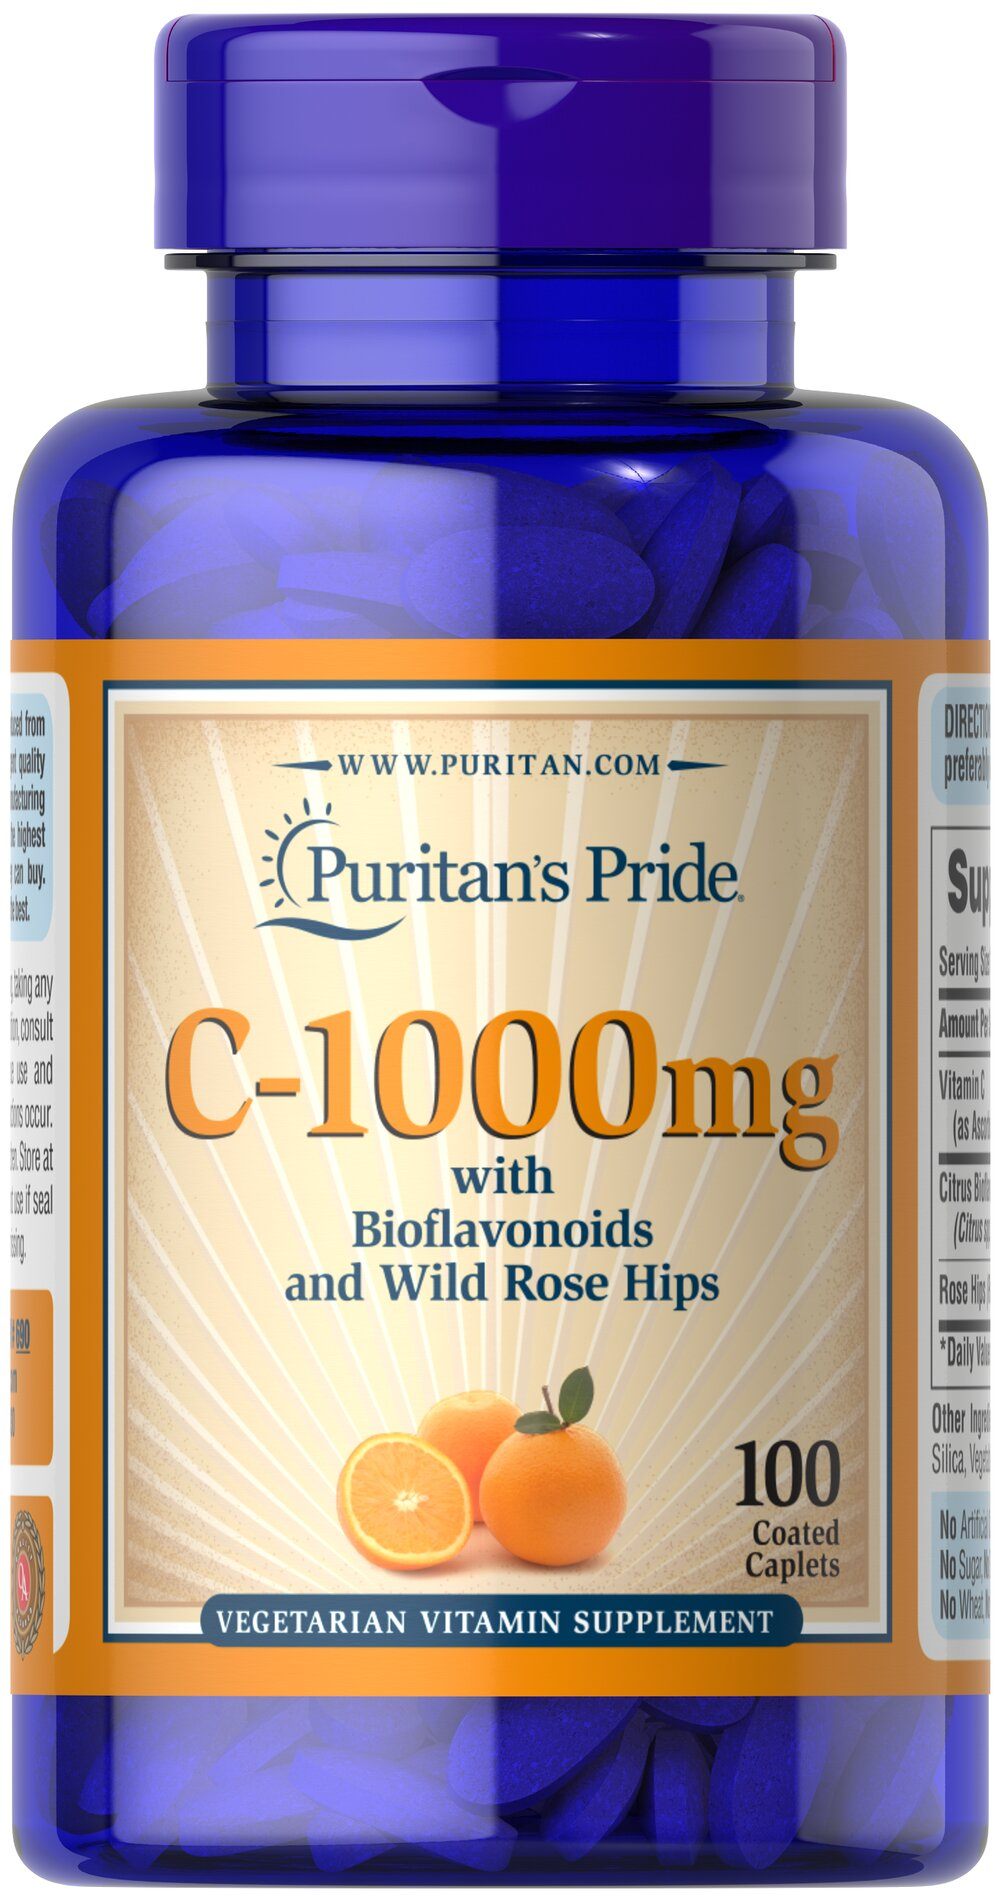 Vitamin C-1000 mg with Bioflavonoids & Rose Hips <p>Vitamin C is essential to many functions in the body and is one of the leading vitamins for immune support and helps fight cell-damaging free radicals.** Our product also includes Rose Hips, which help the body absorb and utilize Vitamin C.**</p><p>Offers superior antioxidant support.**</p><p>Supports healthy immune function and promotes well-being.**</p> 100 Caplets 1000 mg $9.99